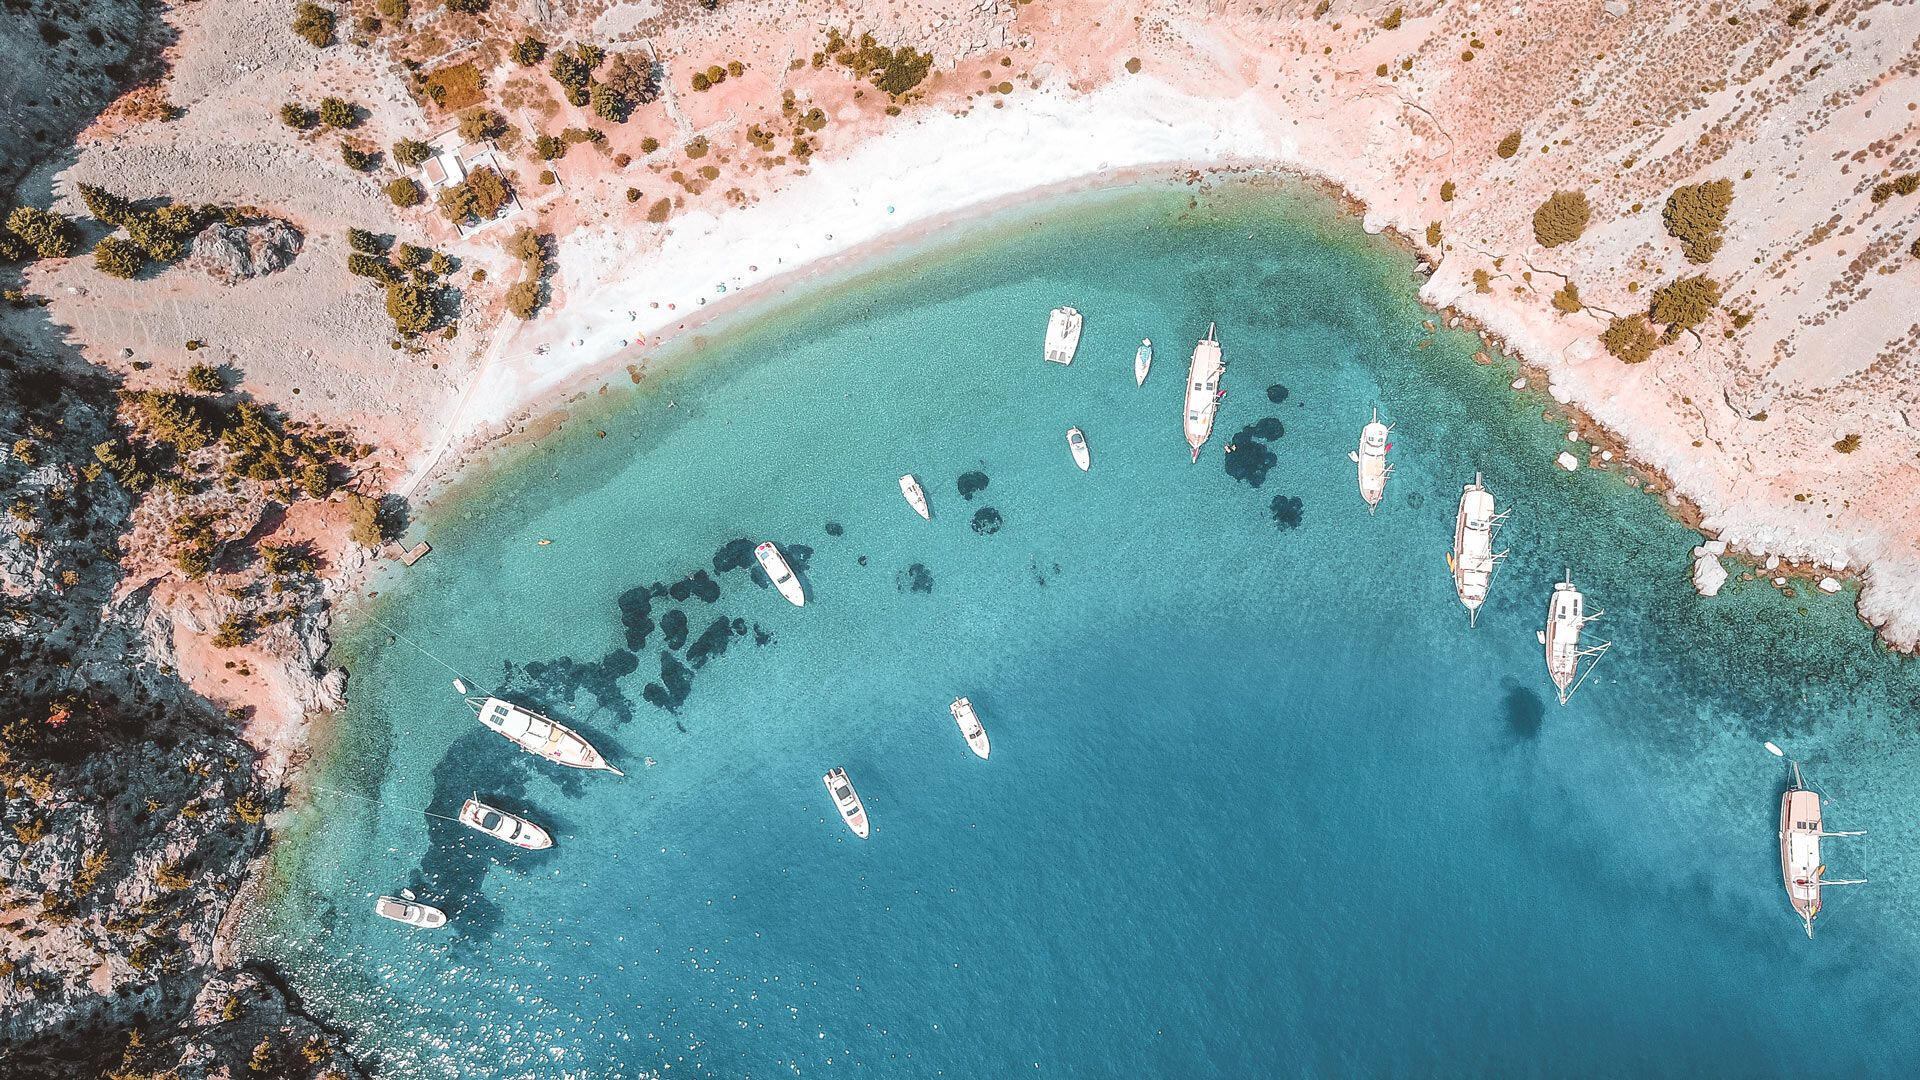 The famous tropical rocky beach of Agios Georgios with yachts docked, Symi island, Dodecanese